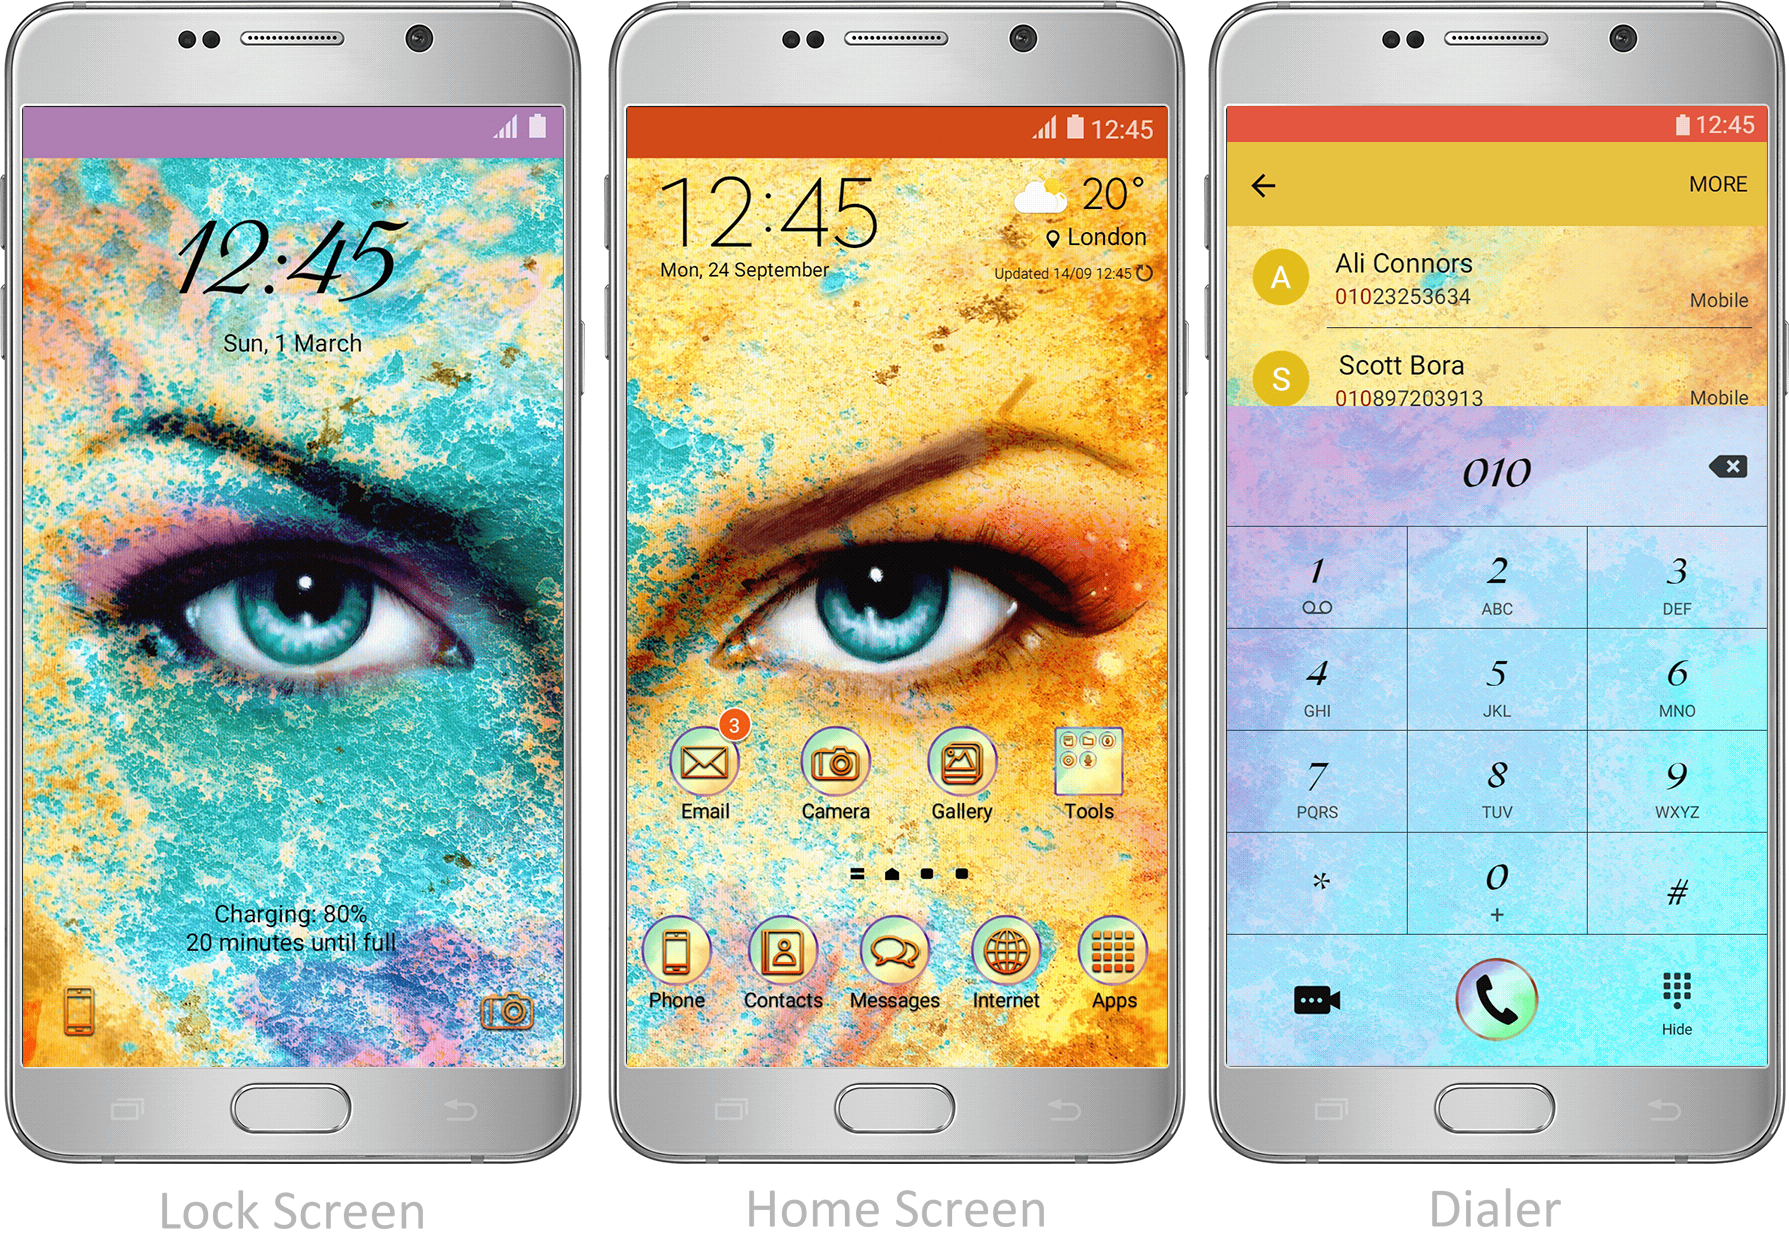 beautiful interface decorate visuals help for this echo a artisticeyes art with to artistic express rw features you phone your theme eyes painterly these decor passion